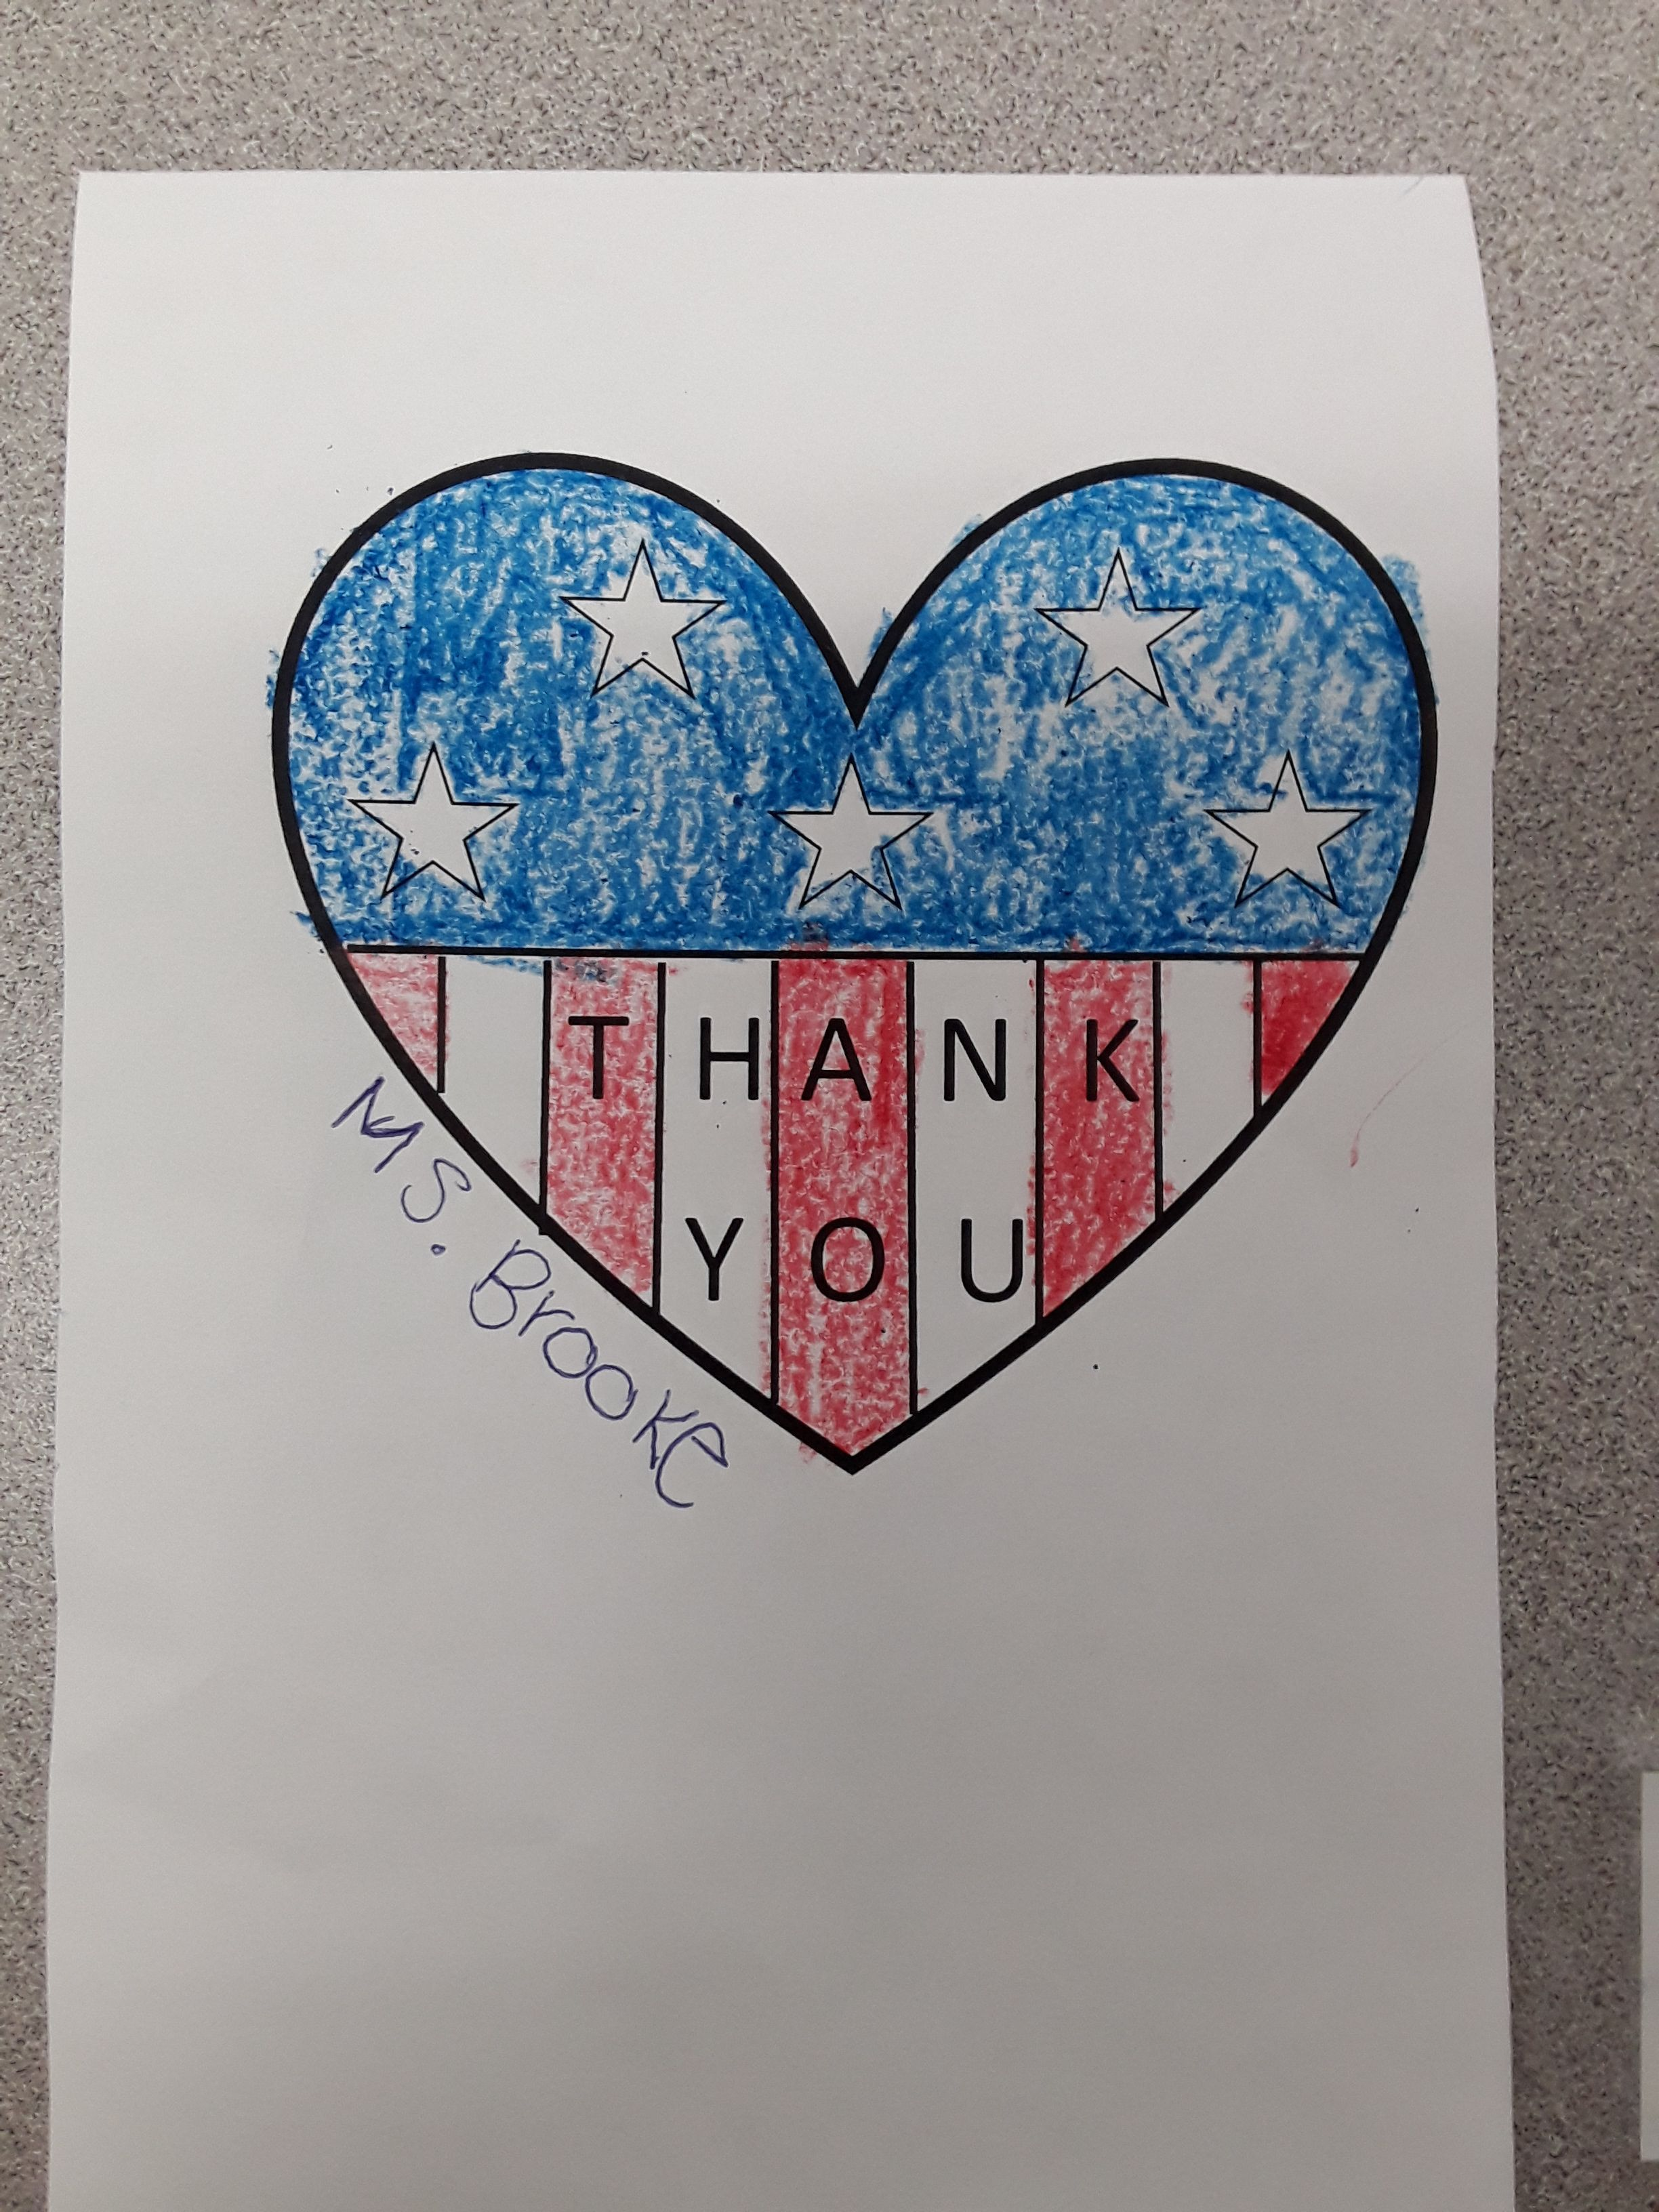 Veterans Day - Preschool Craft #911craftsfortoddlers Veterans Day - Preschool Craft #911craftsfortoddlers Veterans Day - Preschool Craft #911craftsfortoddlers Veterans Day - Preschool Craft #veteransdaycrafts